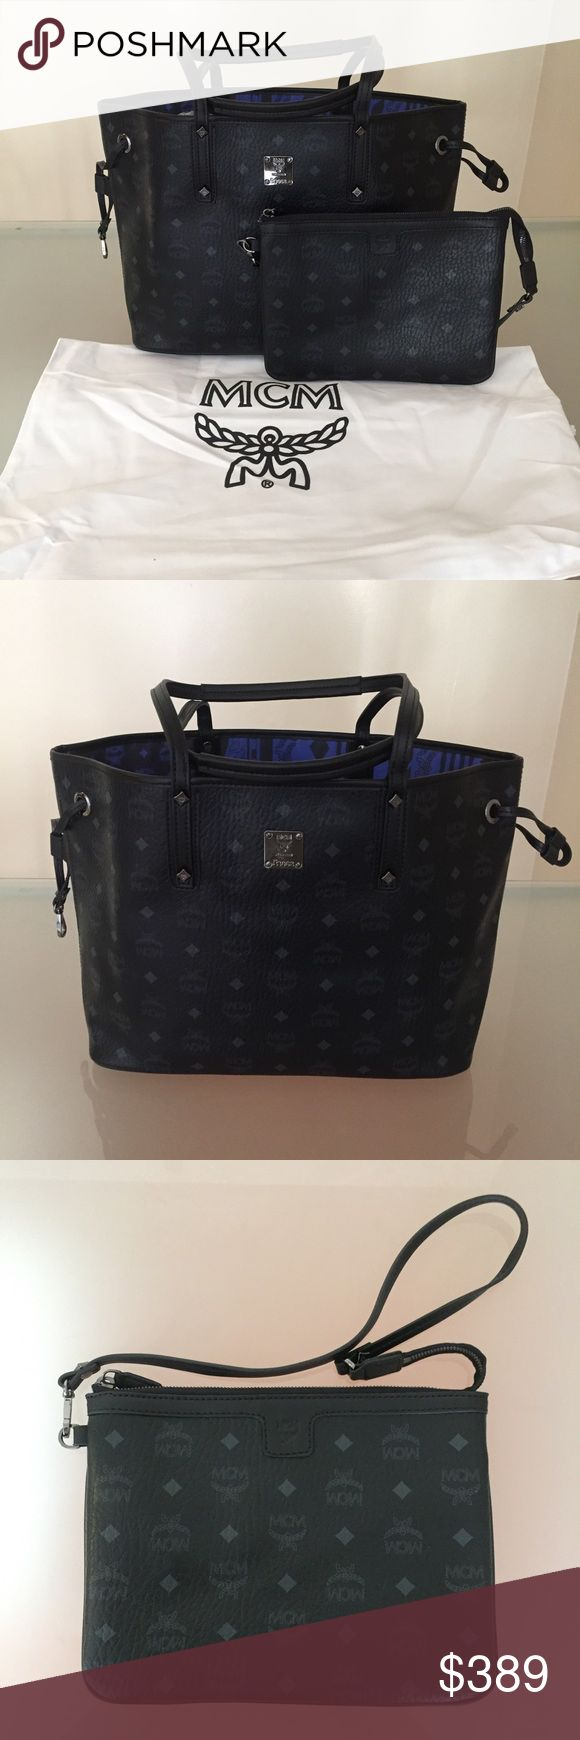 MCM purse tote black reversible handbag authentic guaranteed. size medium, perfect condition, fast shipping MCM Bags Totes